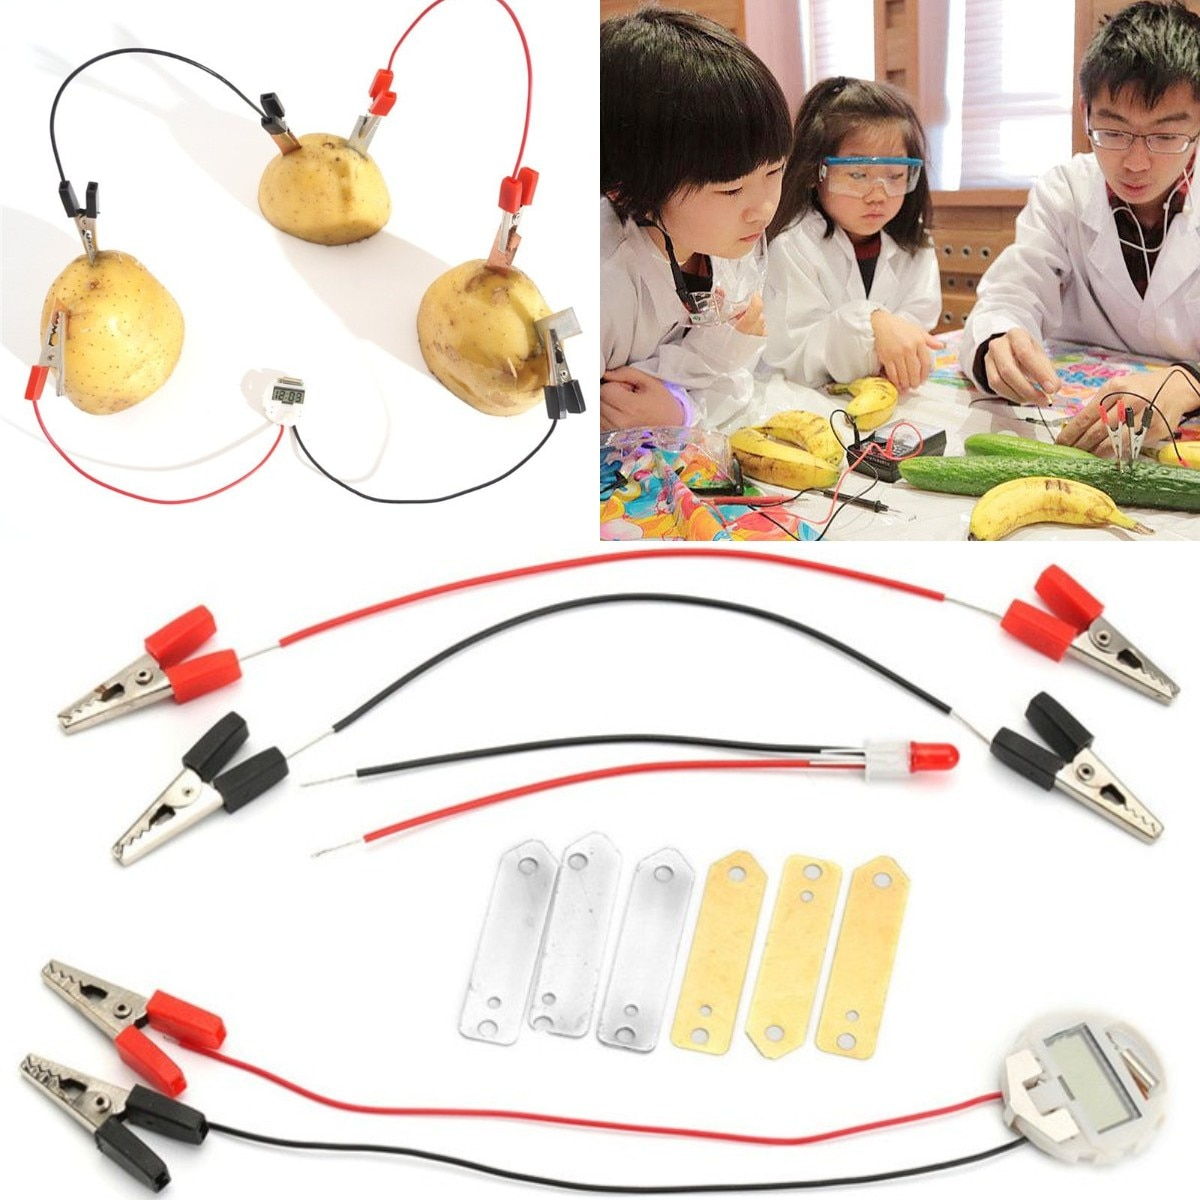 Potato Fruit Biologia Energy Generate Electricity Science Experiment Educational Toys For Children K